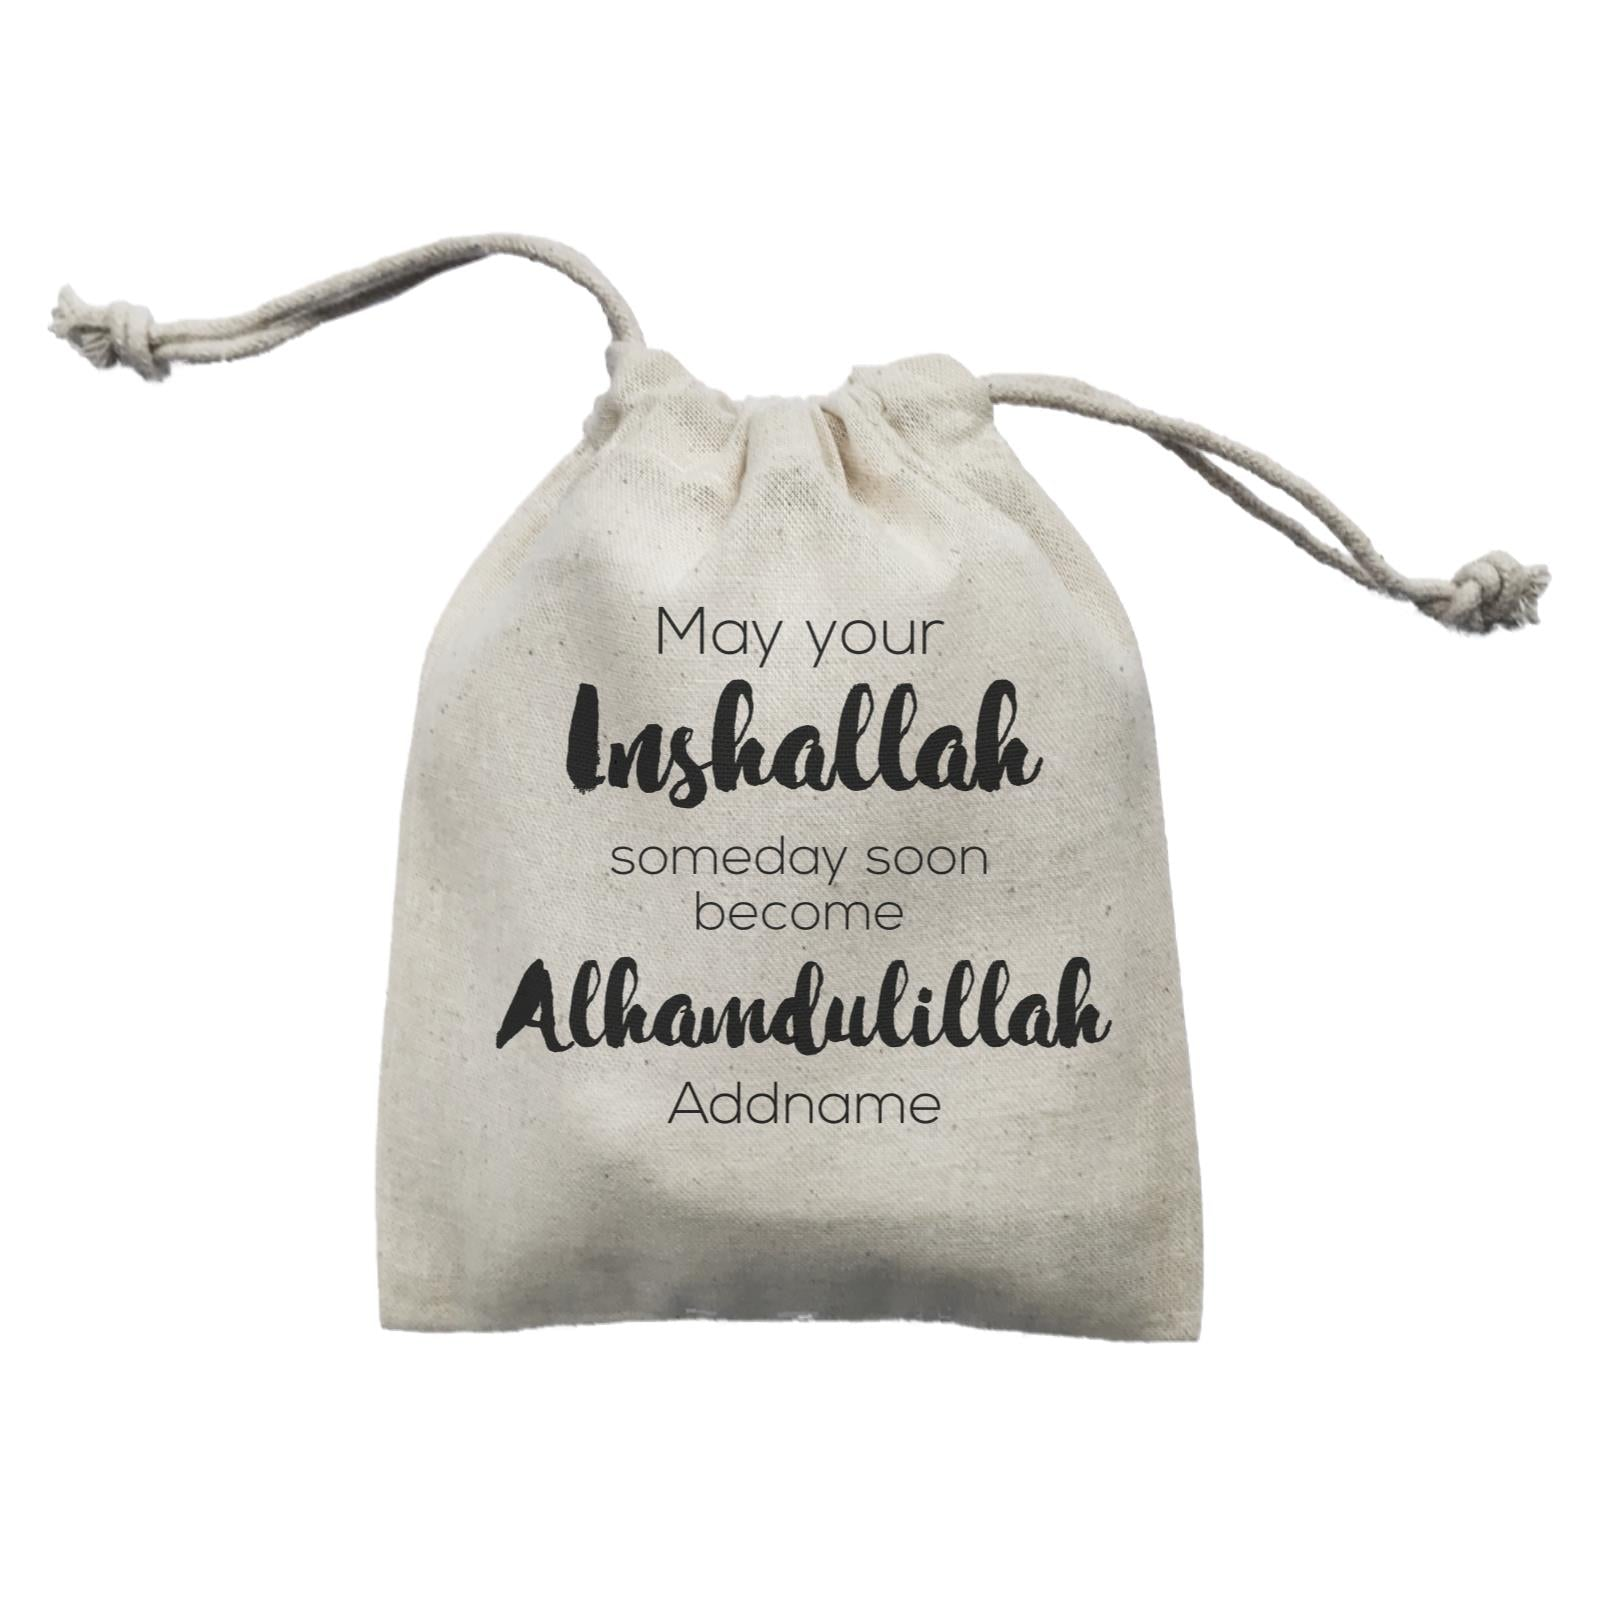 May Inshaallah Someday Soon Become Alhamdulillah Addname Mini Accessories Mini Pouch